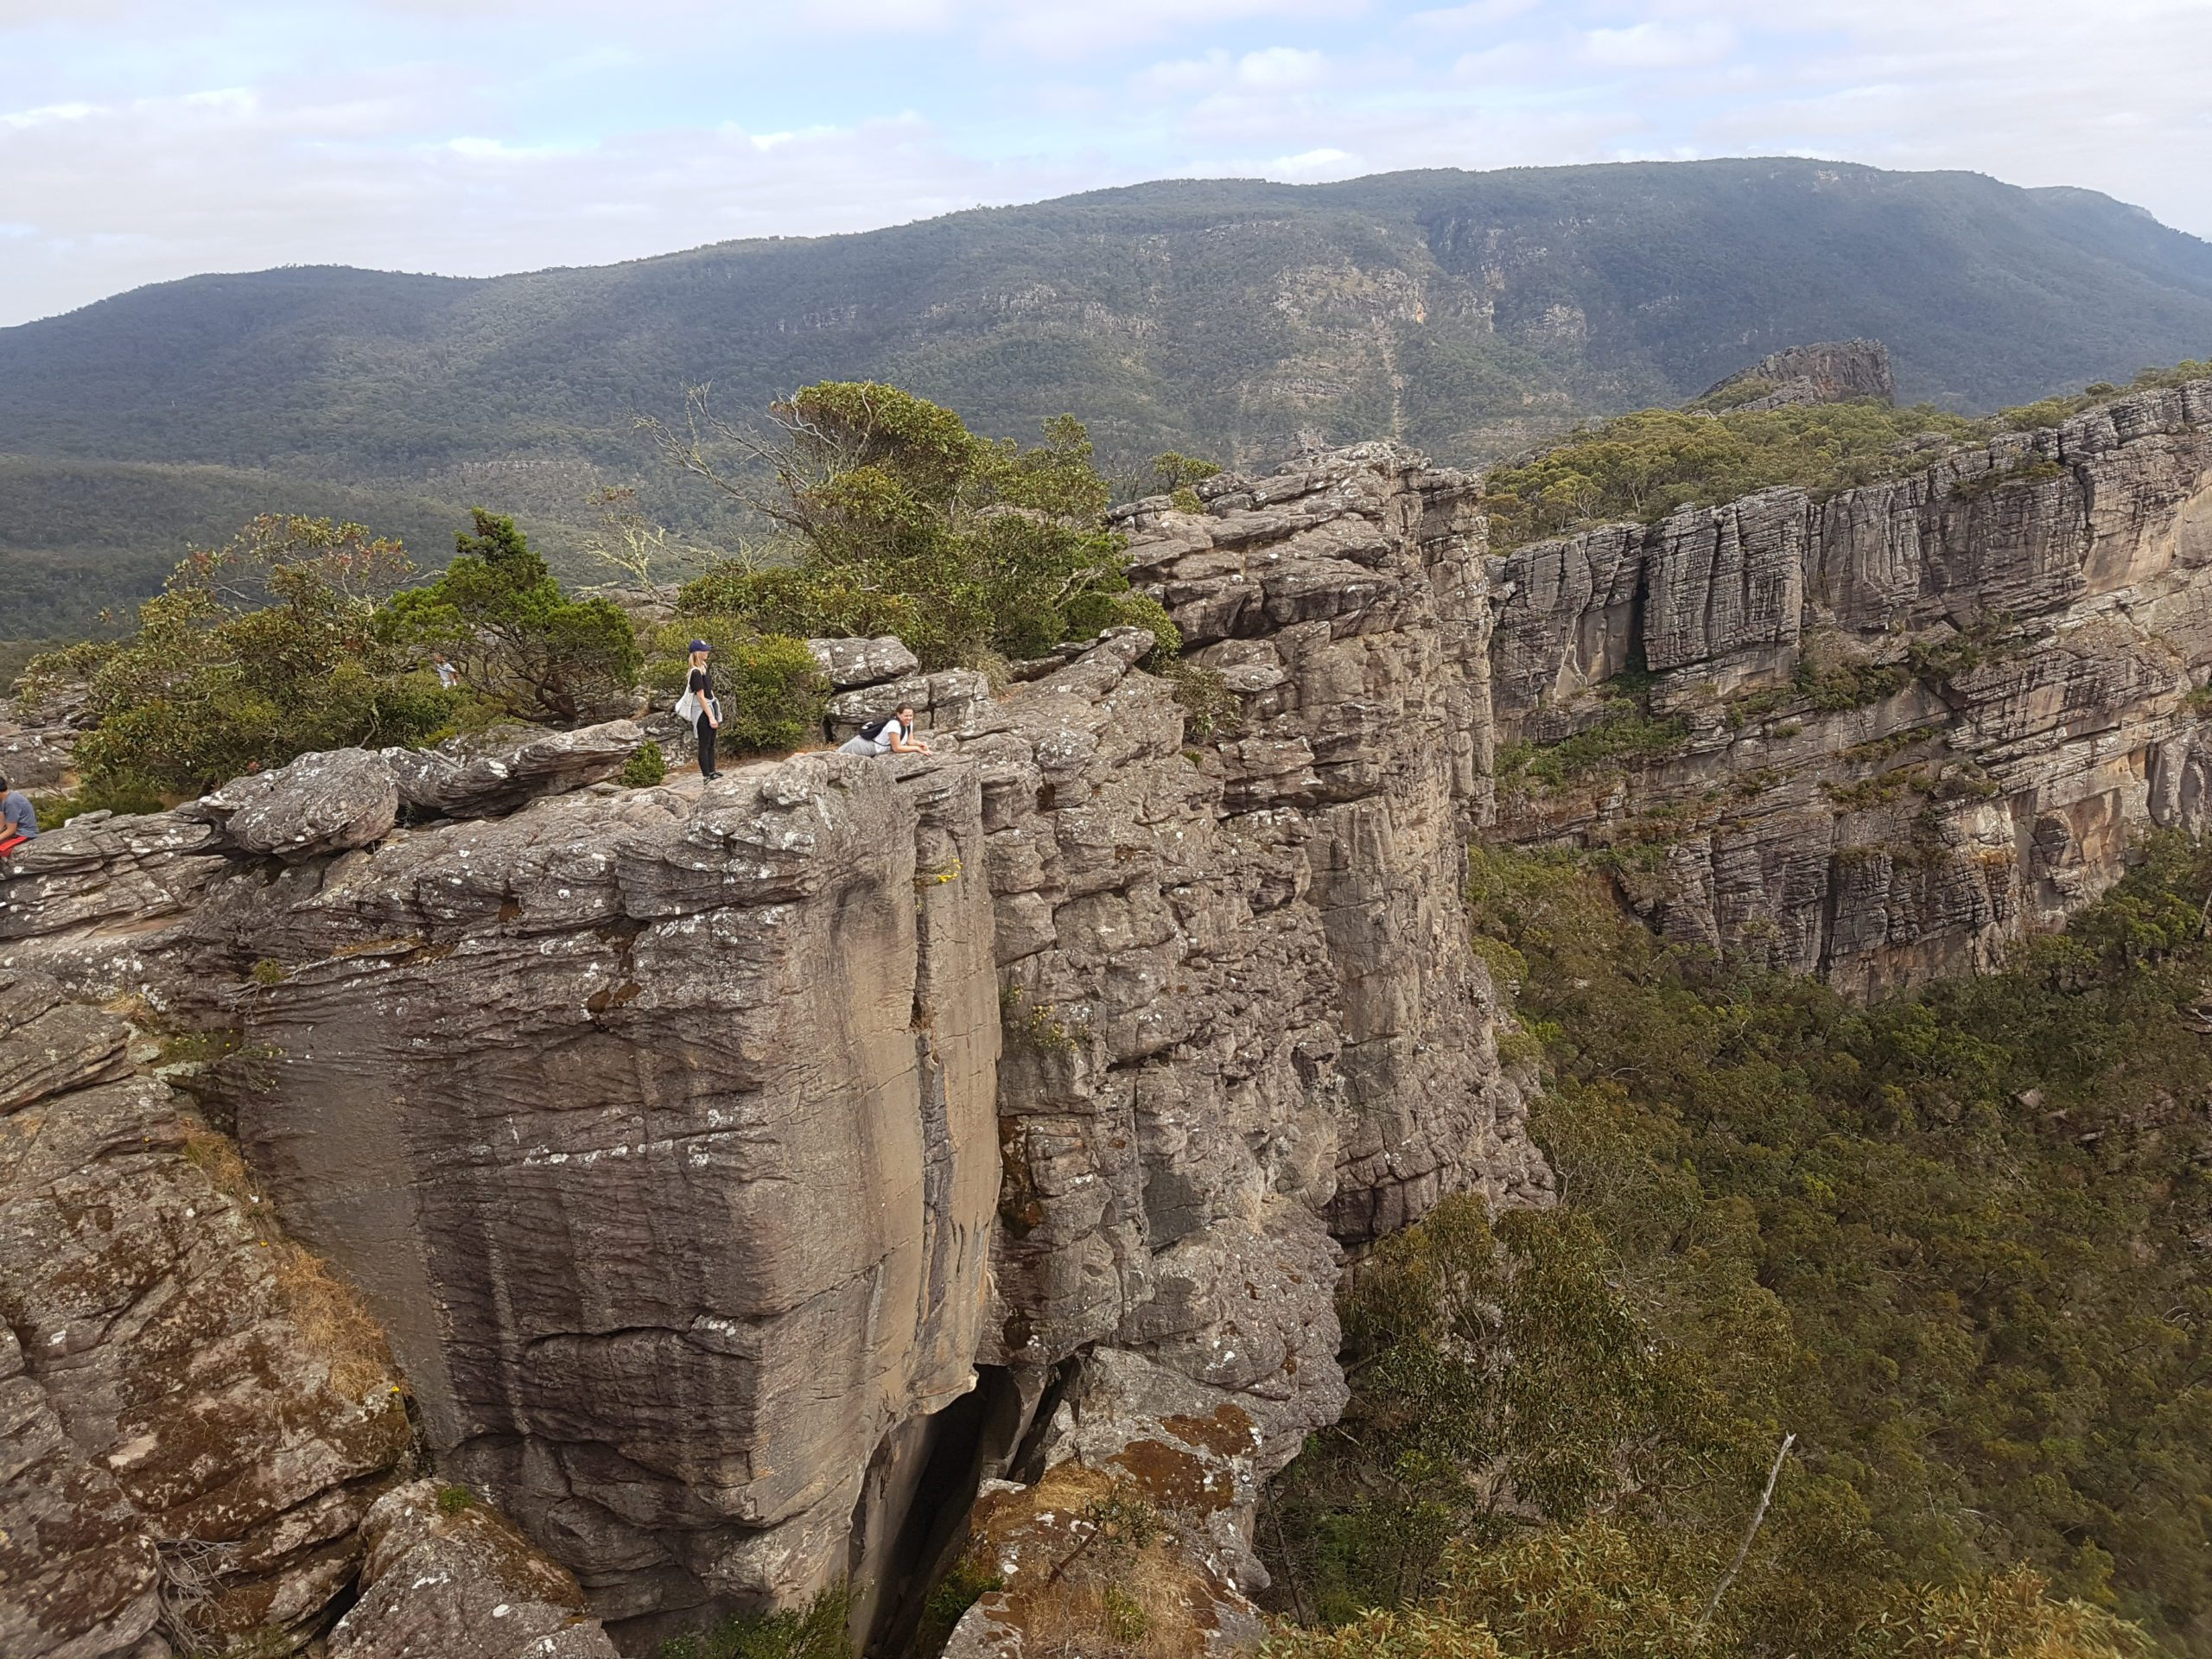 Grampians National Park-Victoria. How to spend an exciting weekend ...